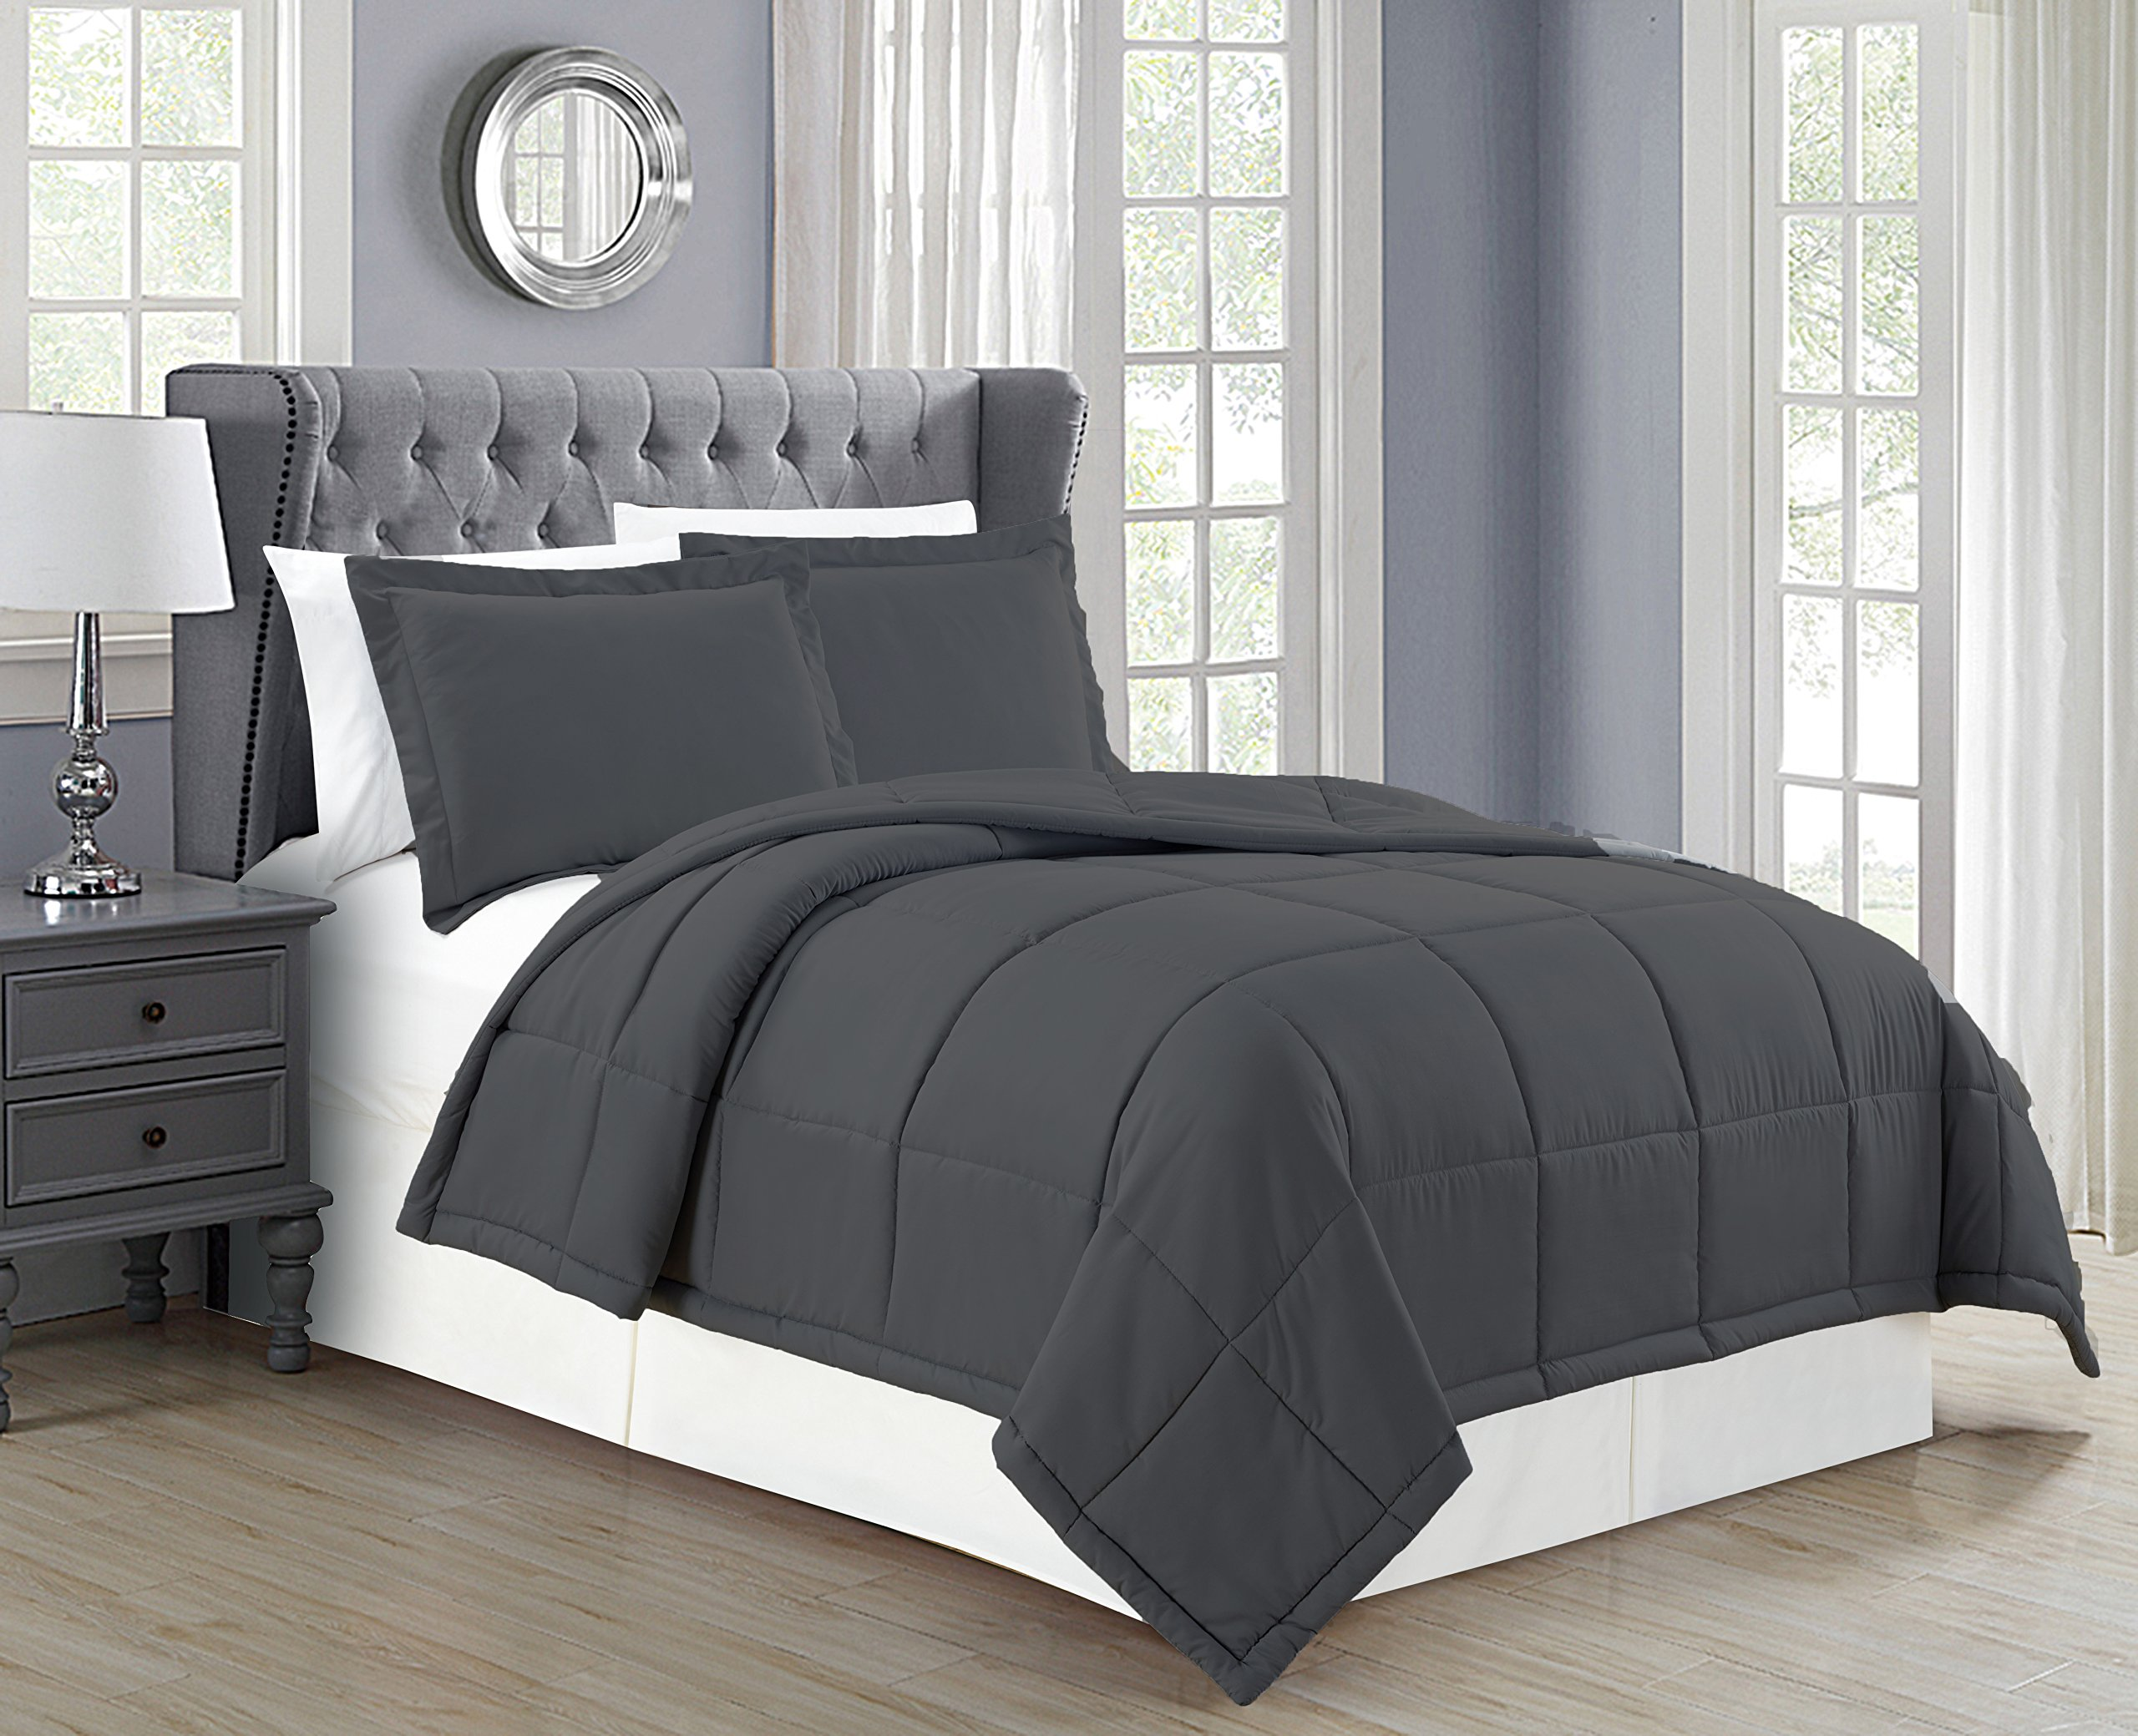 Mk Collection 3pc Full/Queen Down Alternative Comforter Set Solid Charcoal/Dark Grey New by MK Home